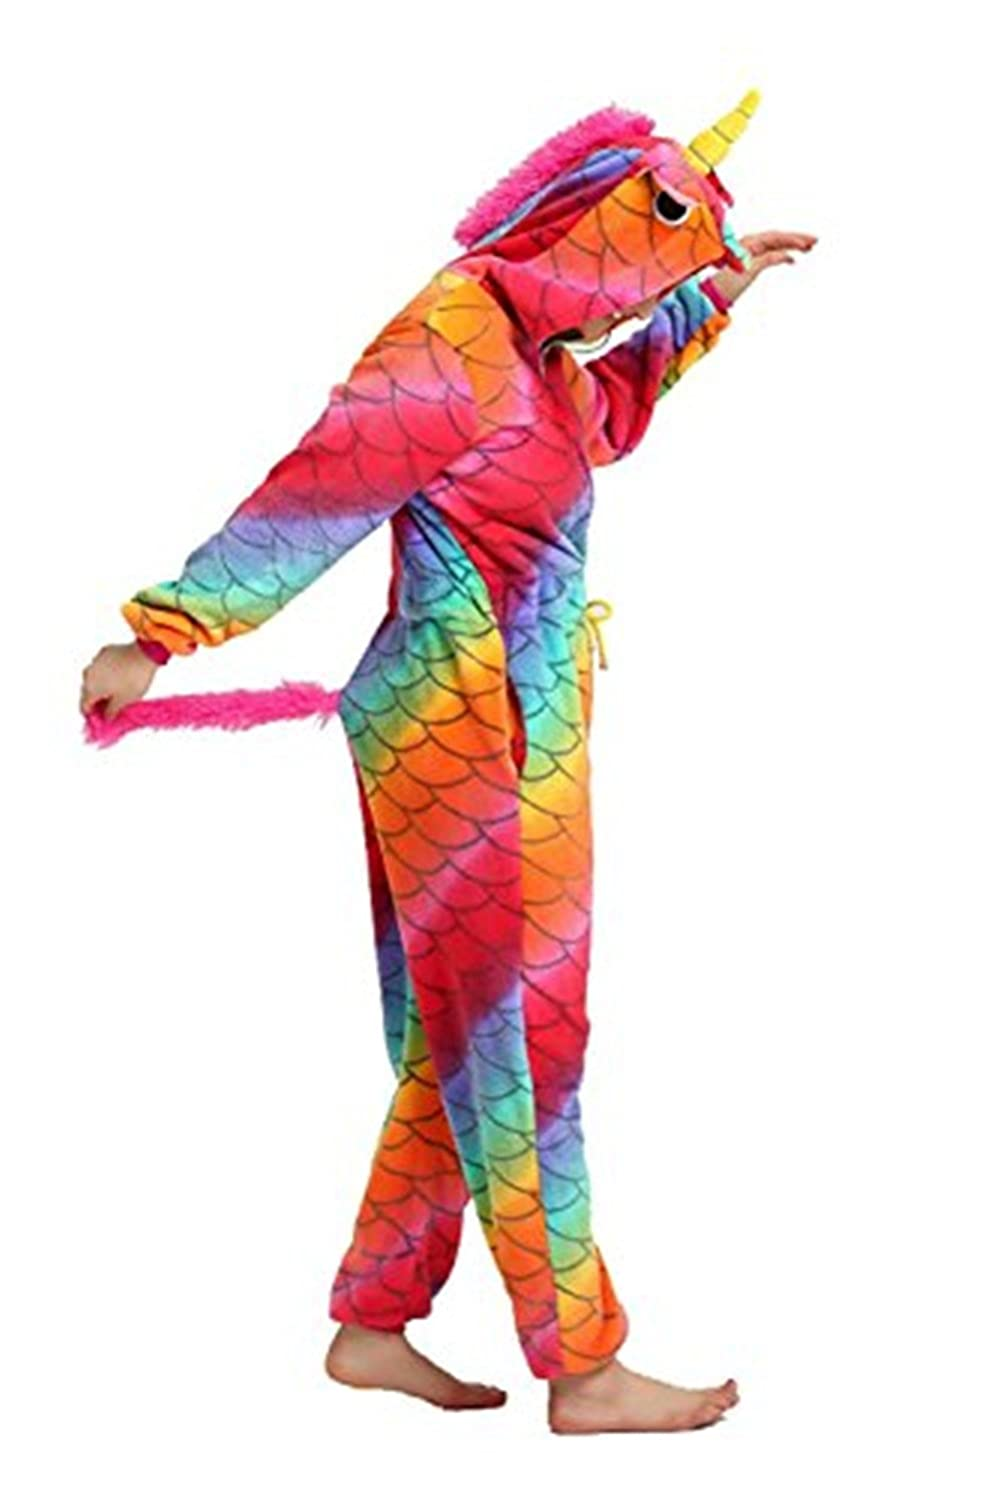 Amazon.com: Misslight Unisex Pajamas Unicorn Animal Pajamas Unicorn Cosplay Costume Pajamas Sleeping Wear: Clothing